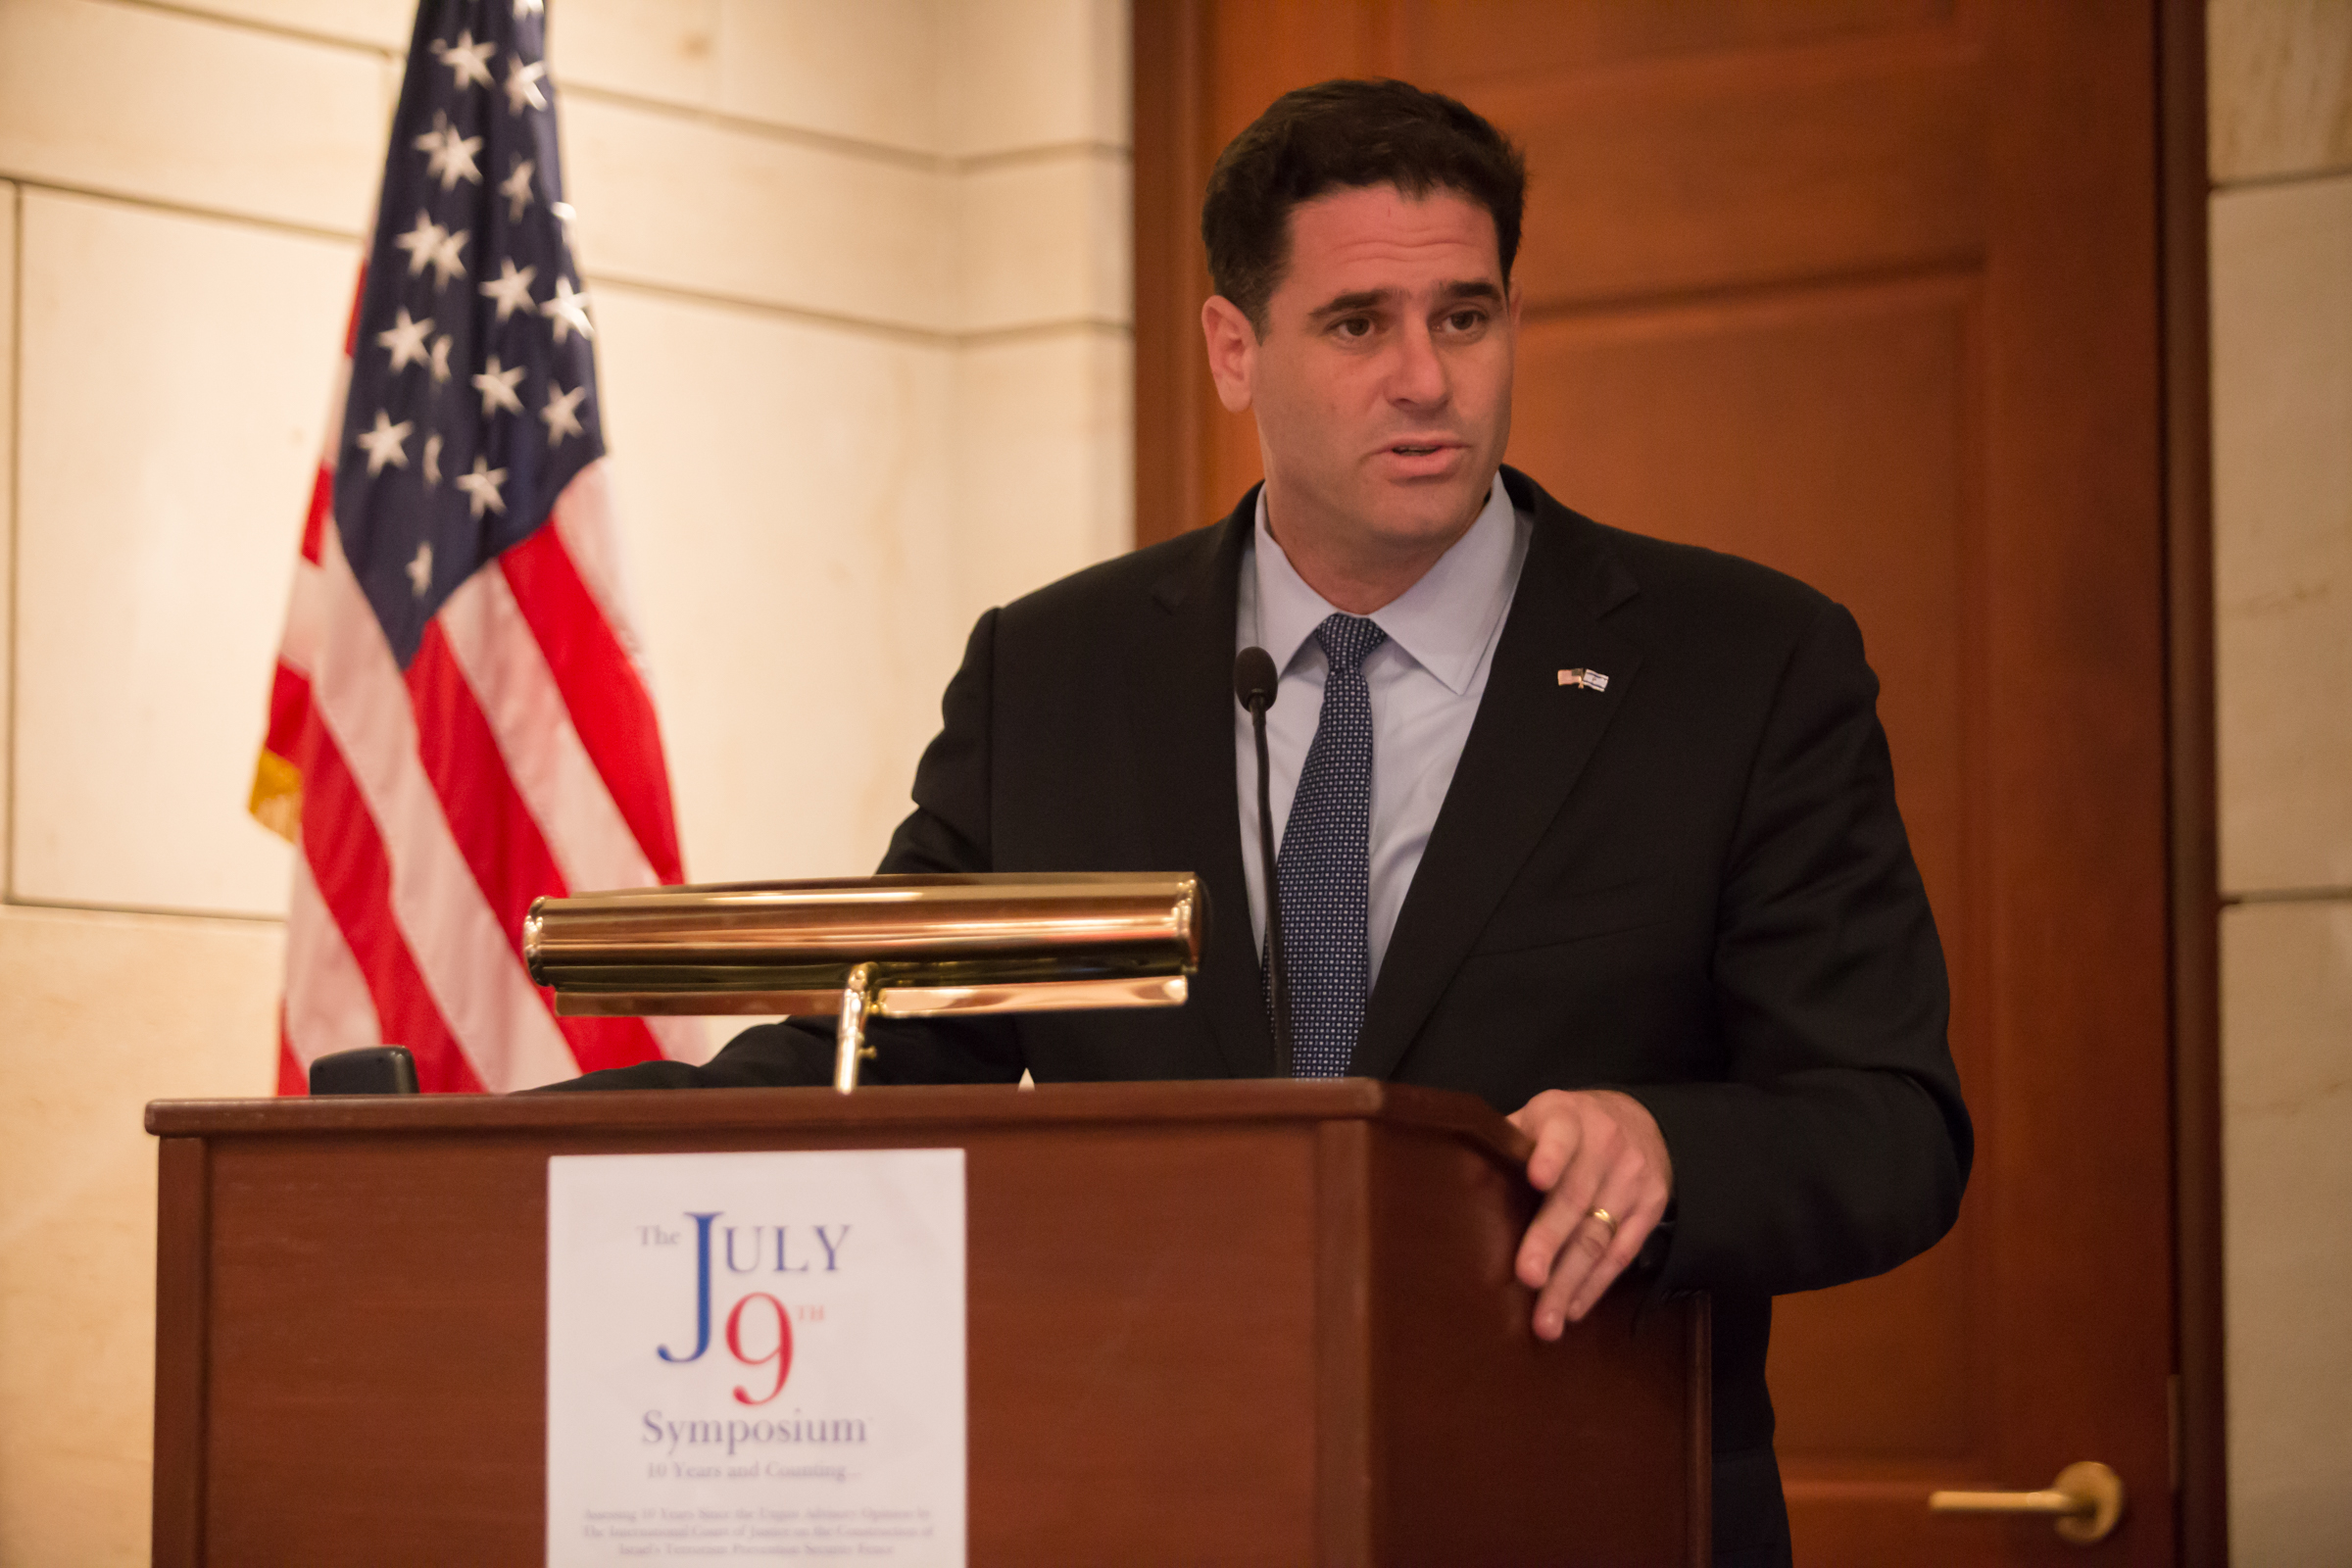 Ambassador Dermer Keynote Address at The July 9th Symposium